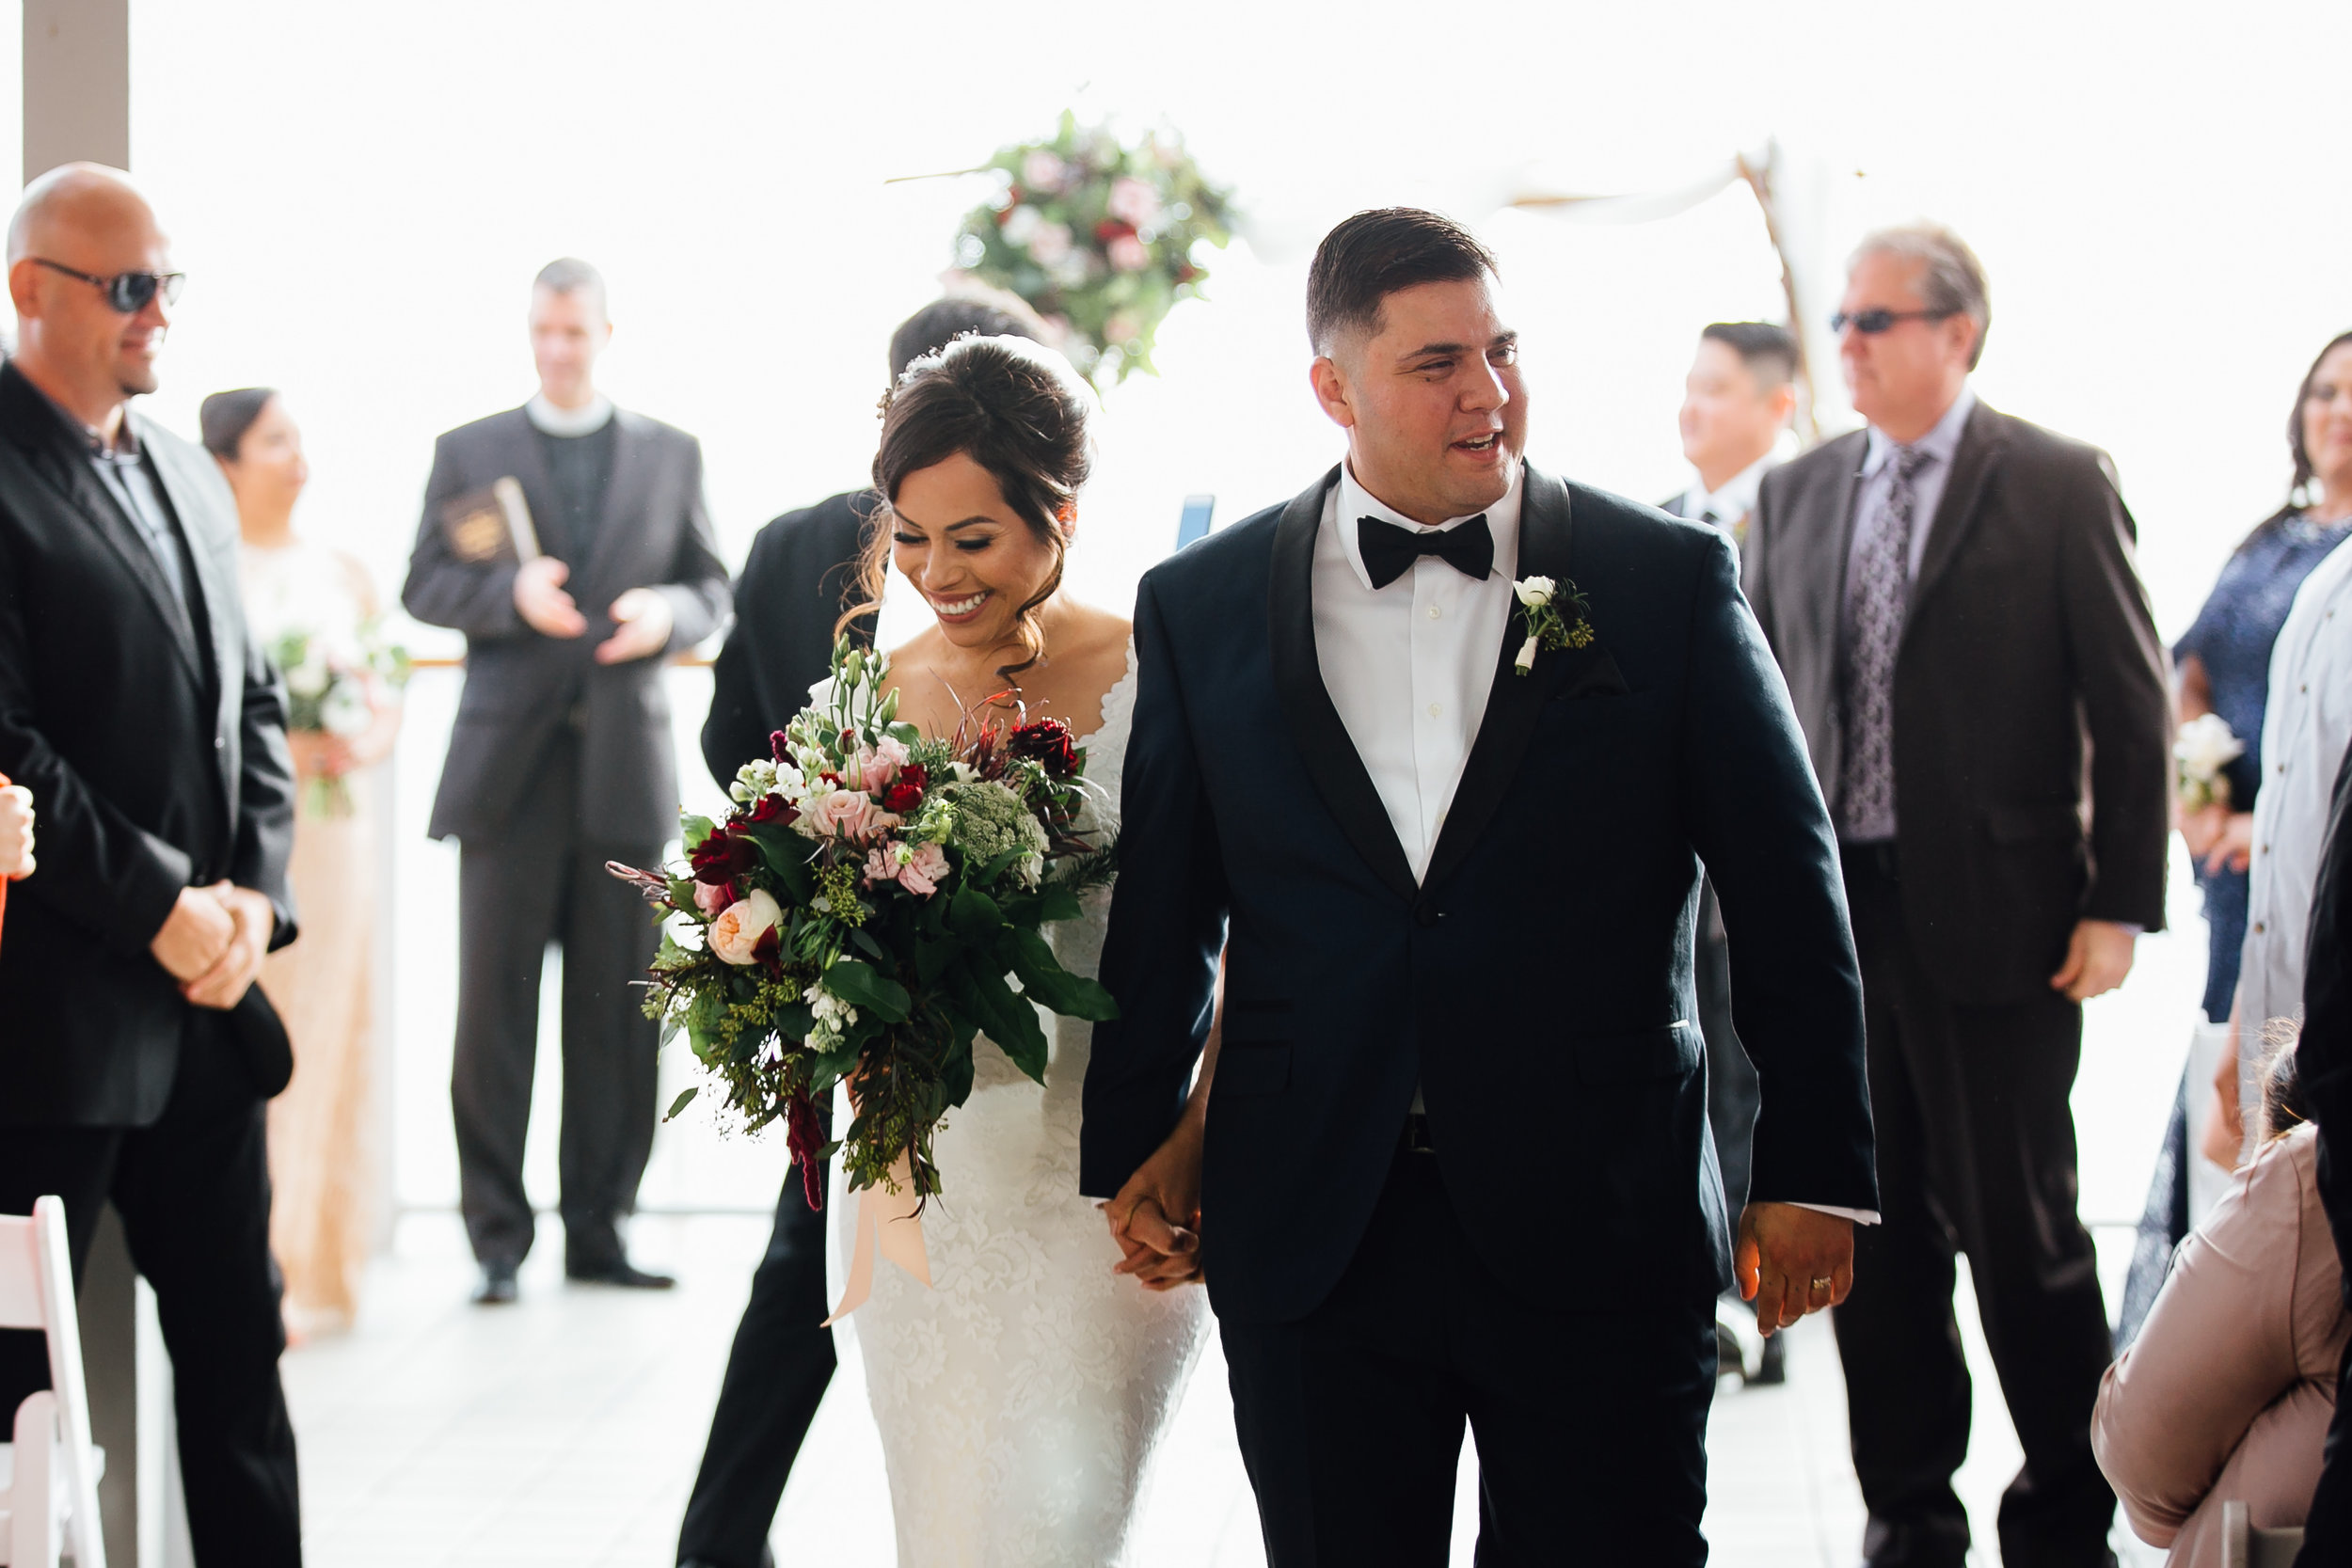 Mayra-Brandon-Wedding-Malibu_139.jpg